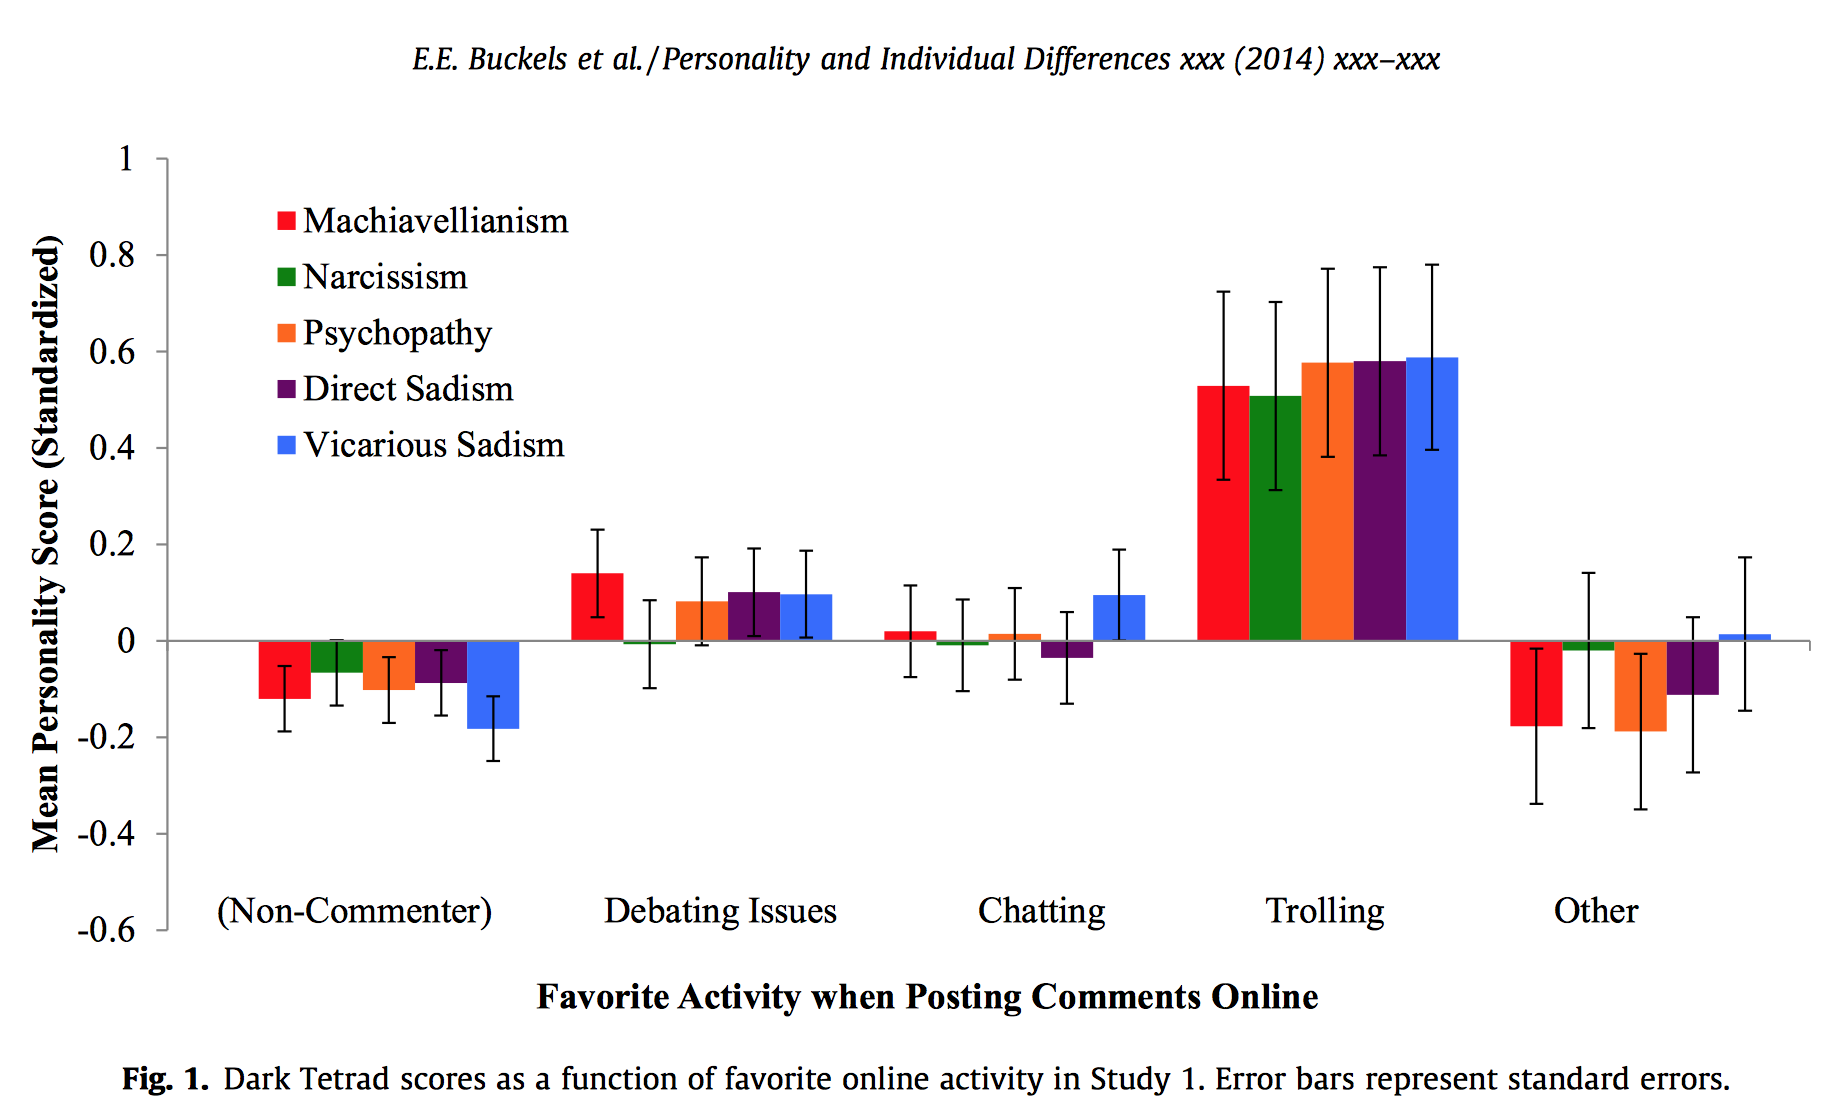 Those who like trolling also rank highest on the Dark Tetrad traits.